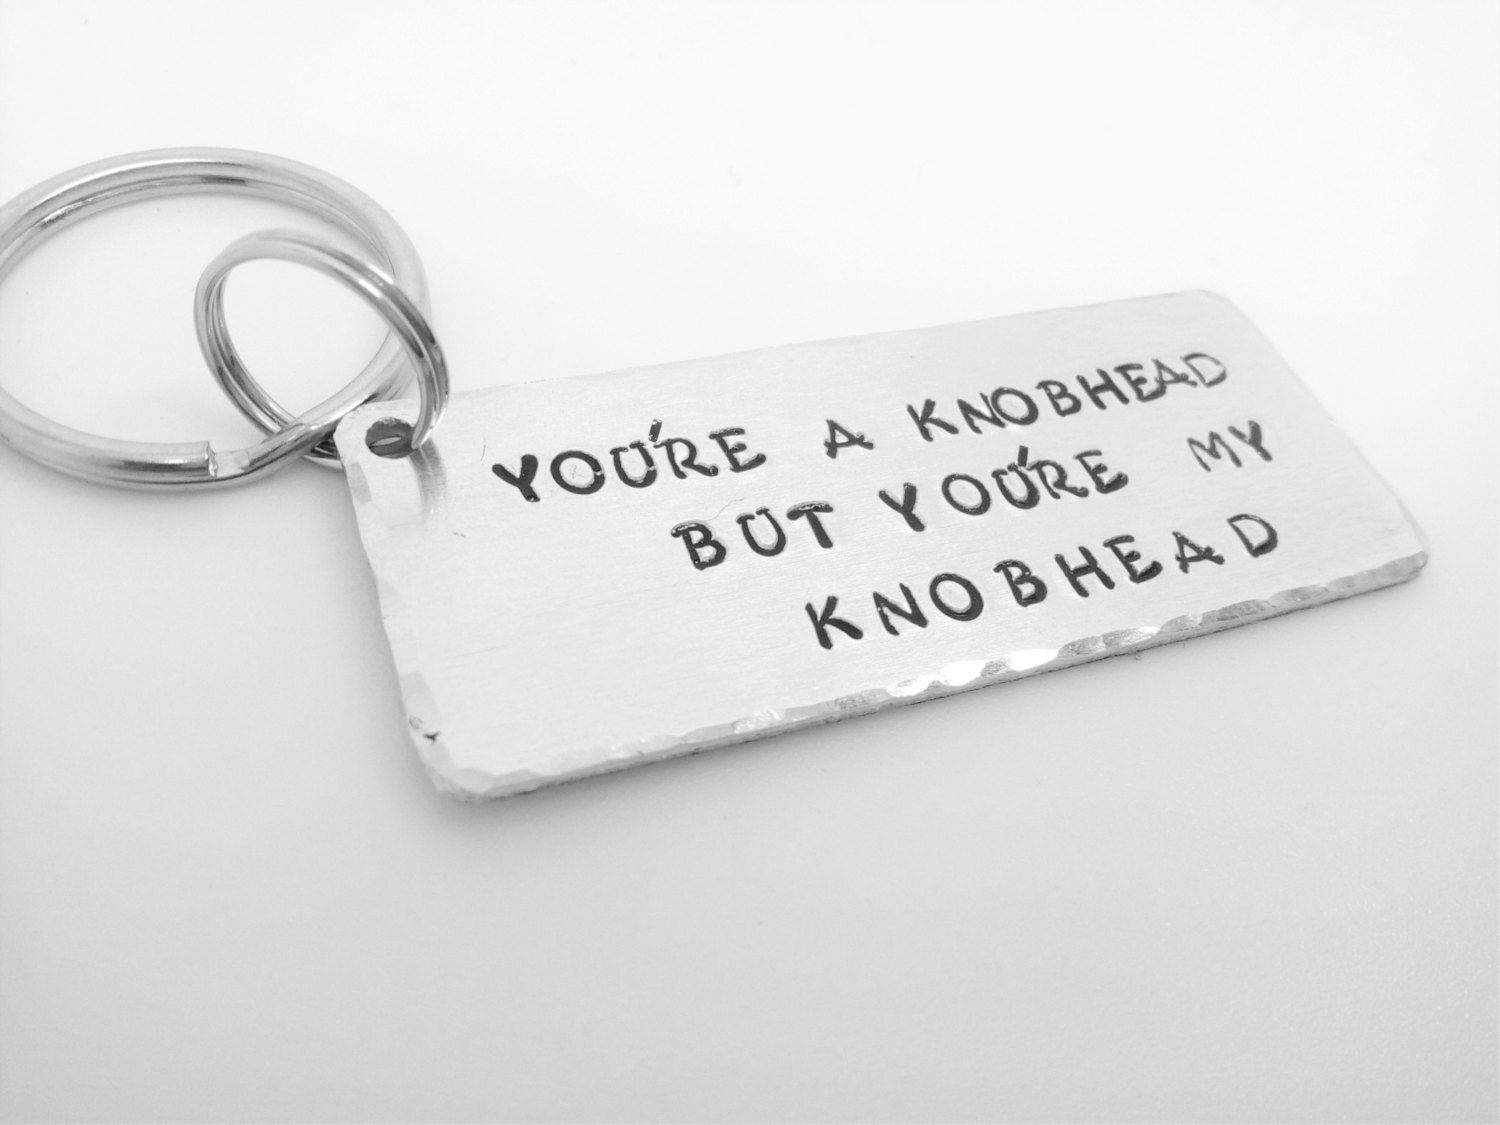 Knohead keyring Youre a knobhead but youre my knobhead hand ...